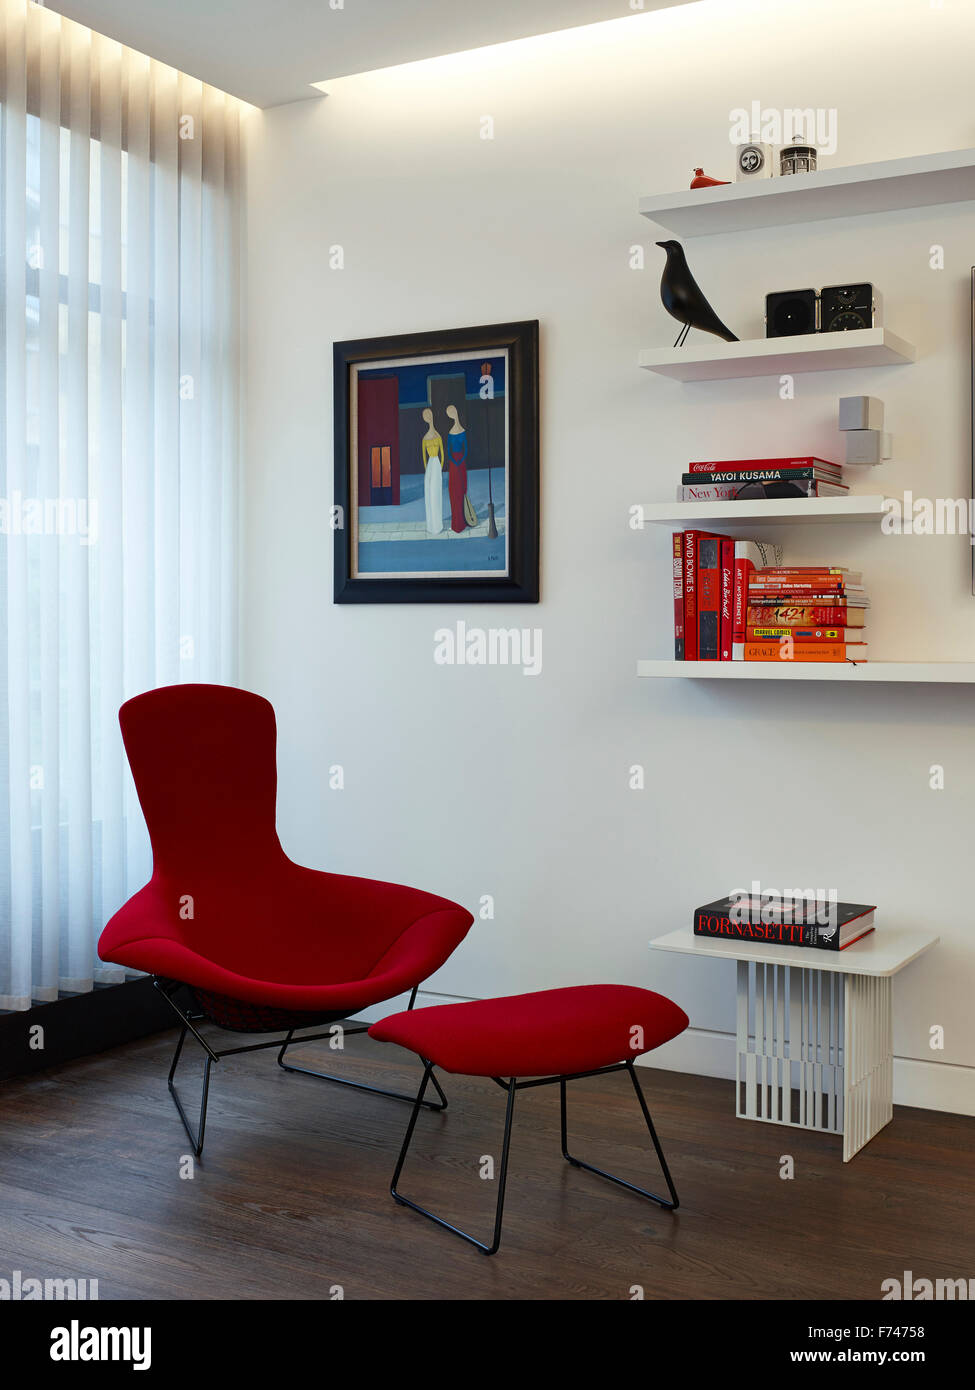 Red armchair and footstool with book shelving in Compass Court Apartment, Shad Thames, London, England, UK - Stock Image